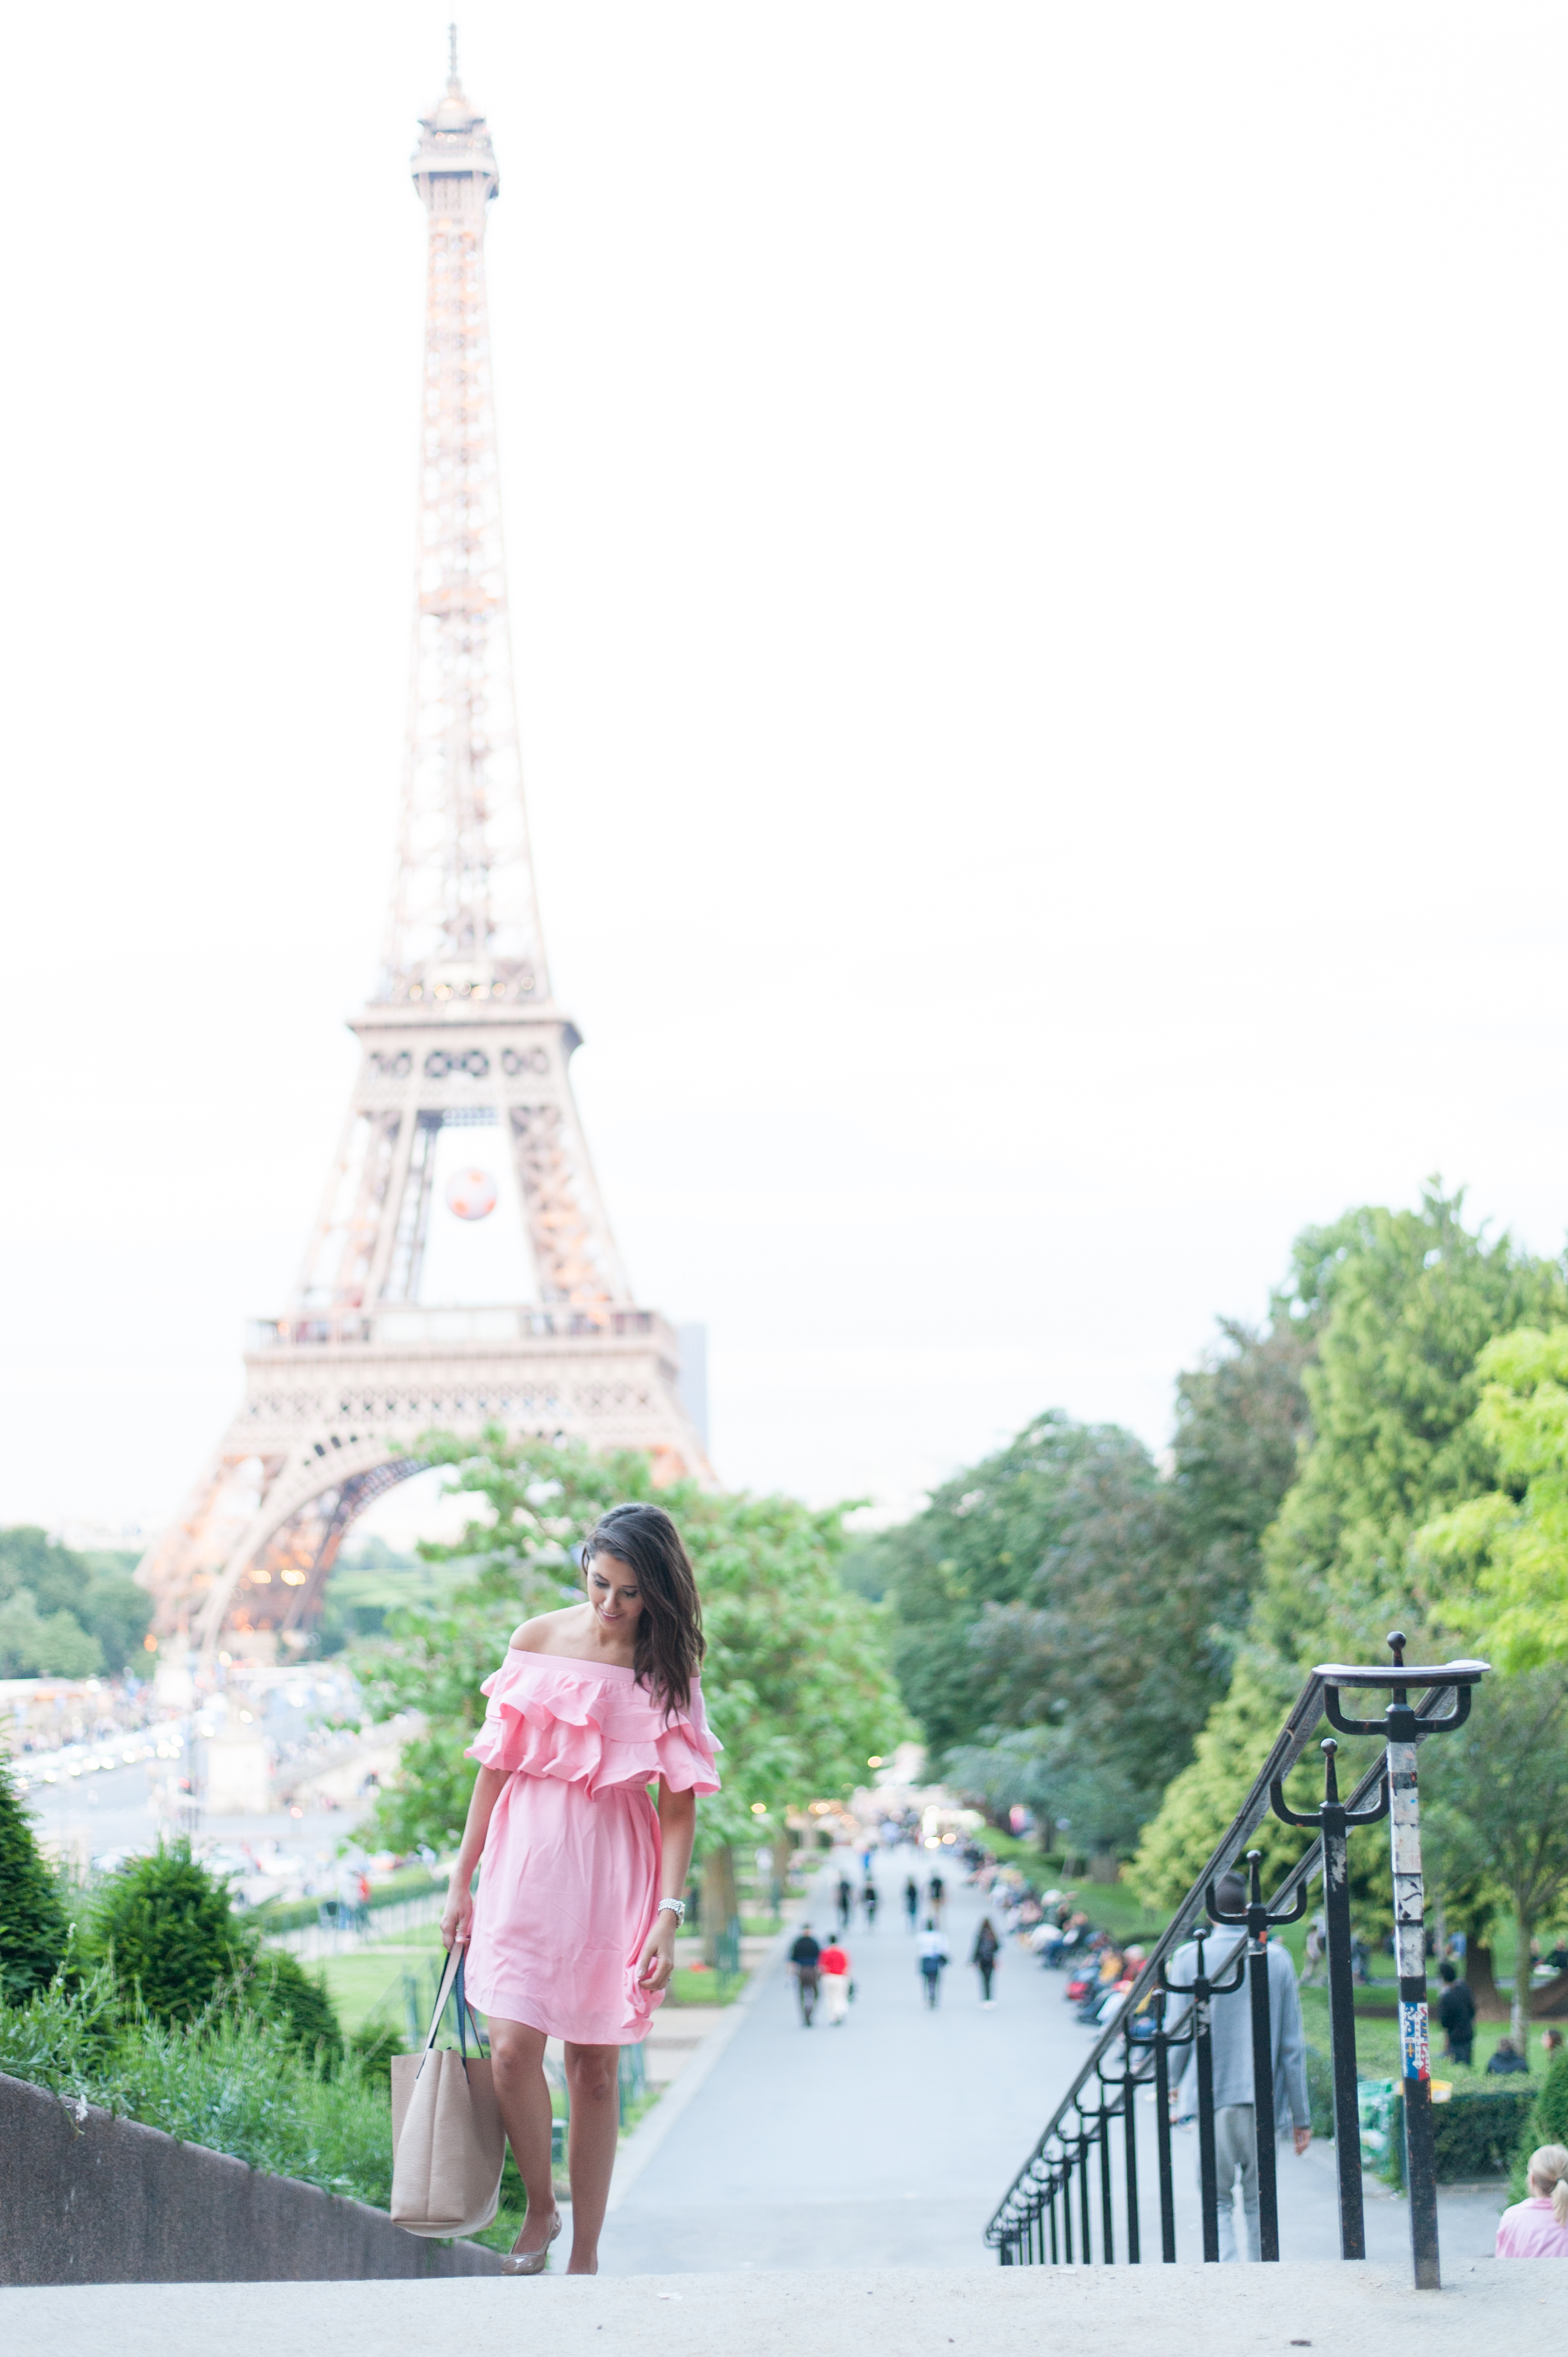 Dress Up Buttercup // A Houston-based fashion and inspiration blog developed to daily inspire your own personal style by Dede Raad | The Eiffel